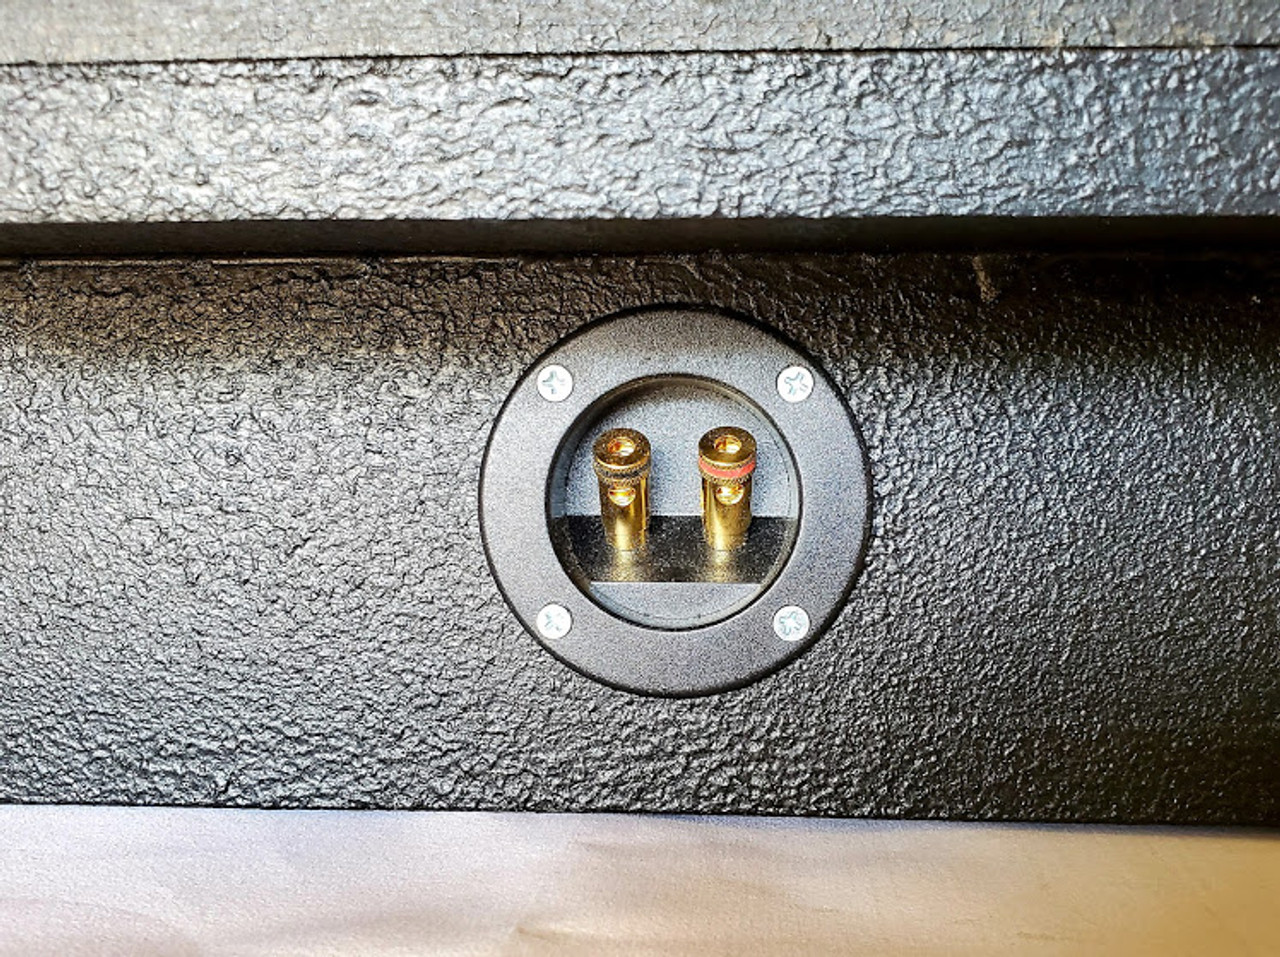 Jeep Gladiator Subwoofer Box And Subwoofer Combo #1